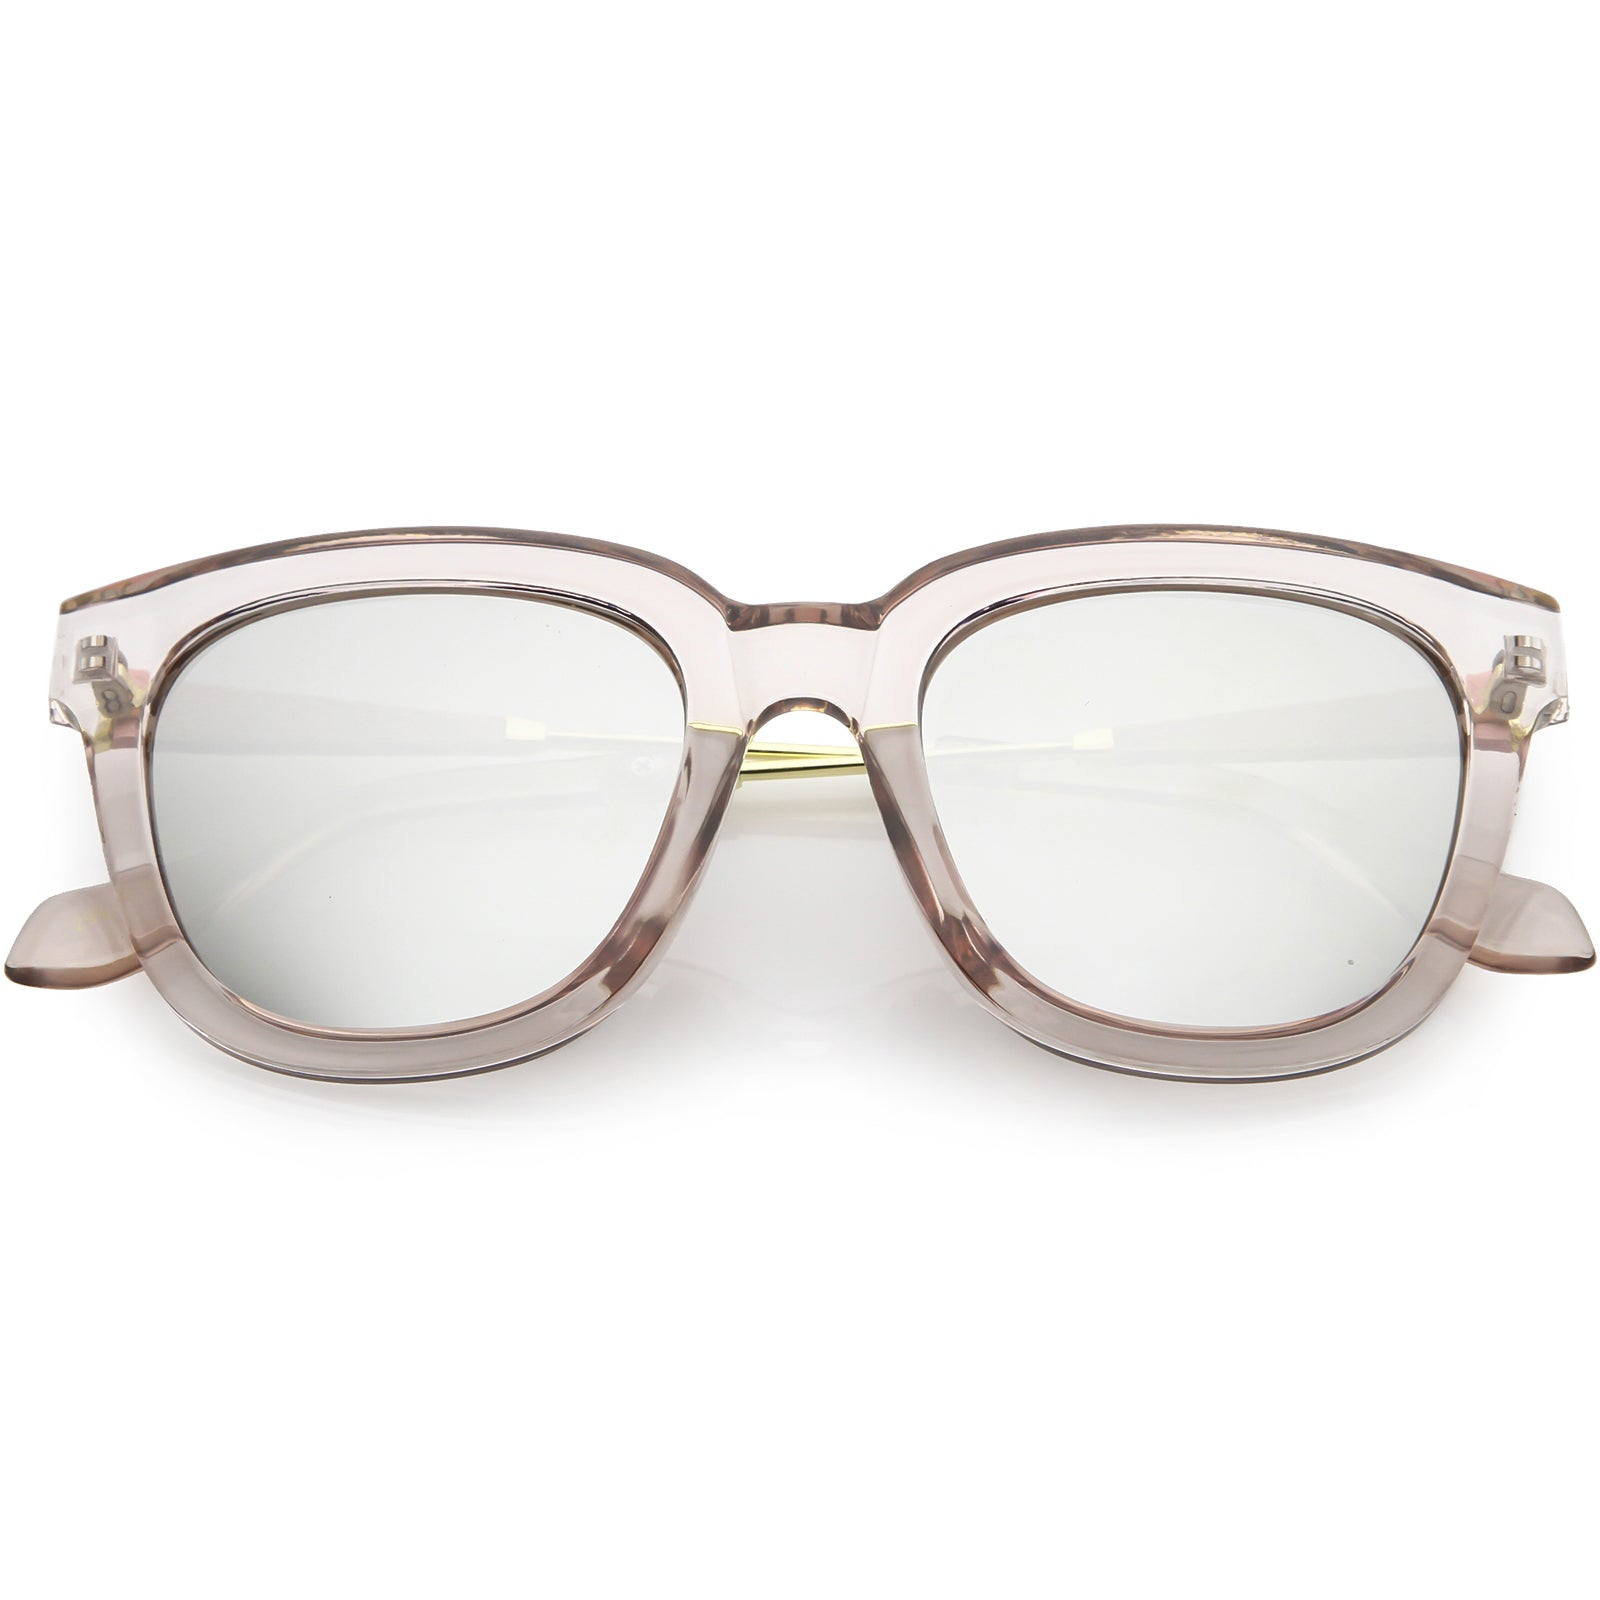 Women's Oversize Horned Rim Thick Square Sunglasses C843